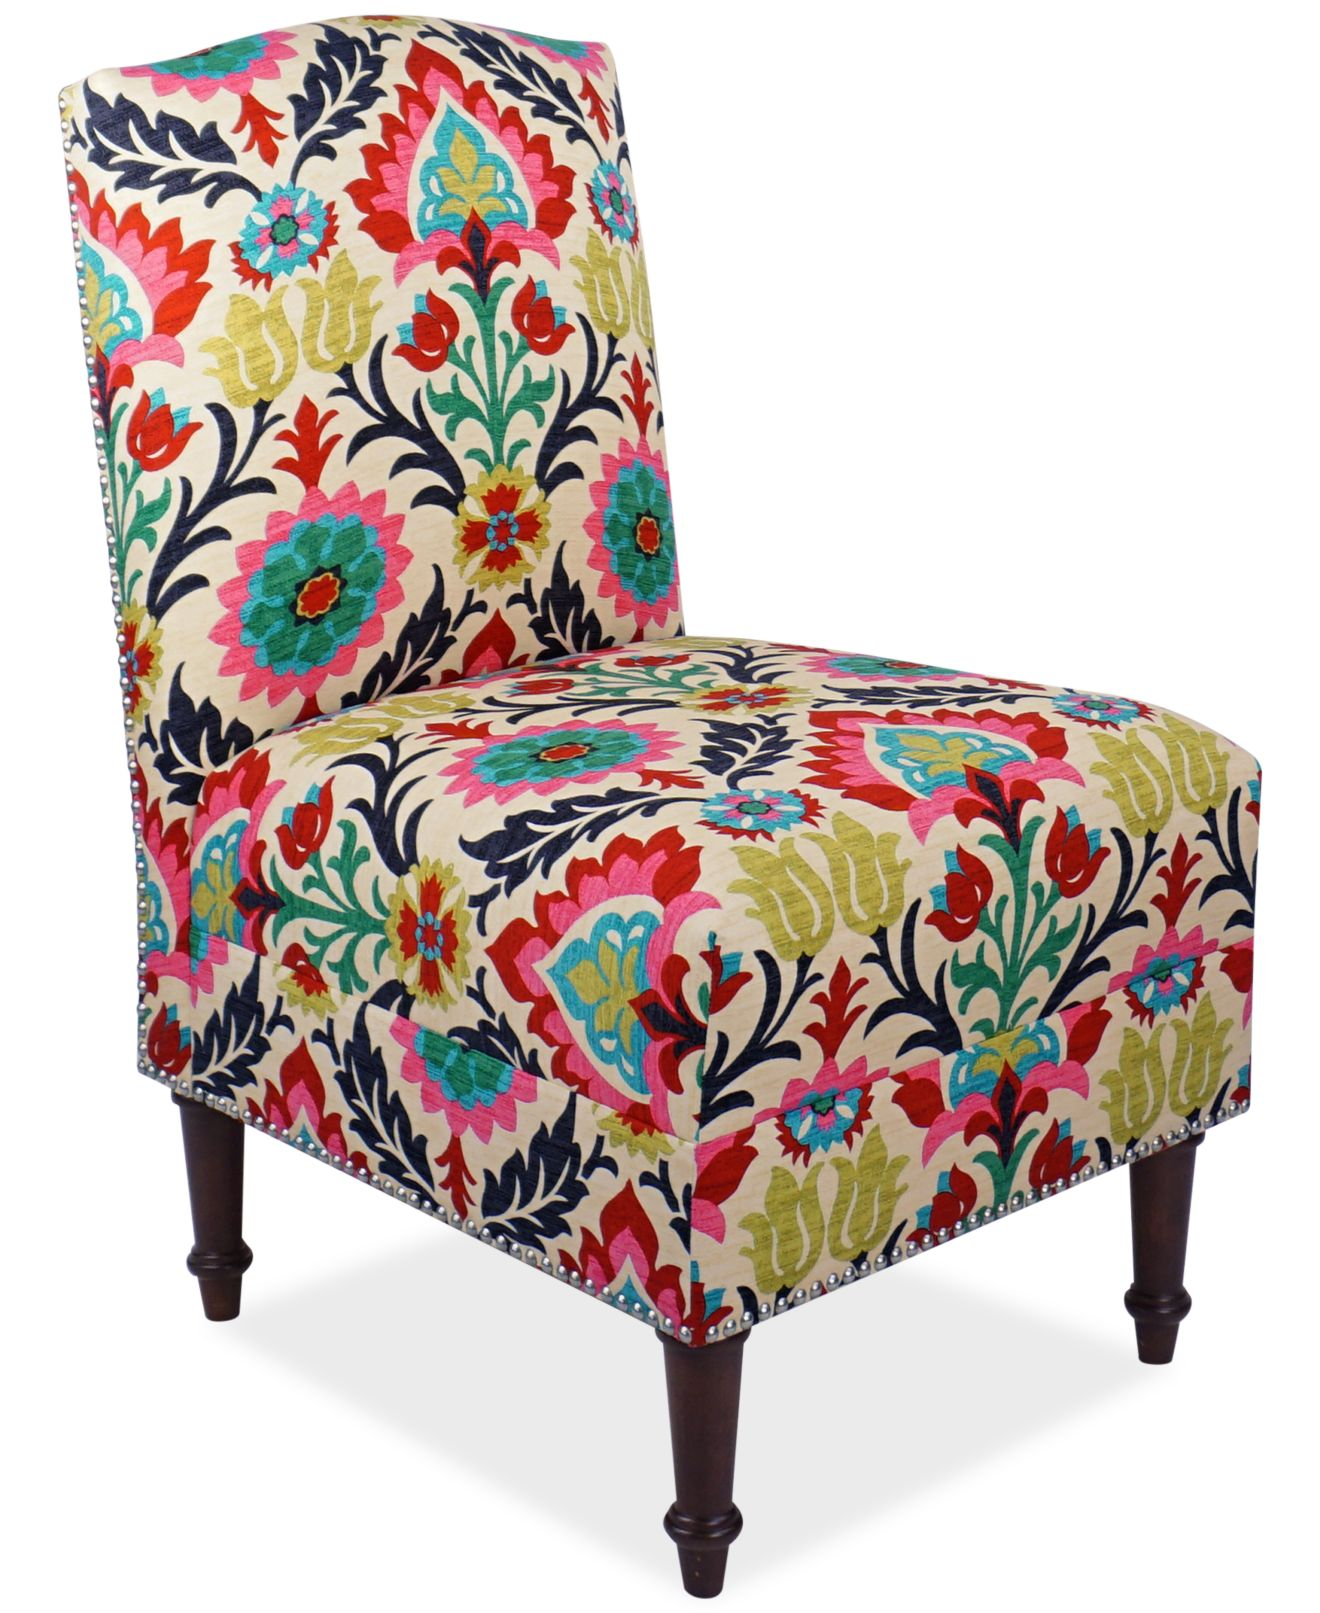 Barstow Santa Maria Fabric Accent Chair Quick Ship ly at